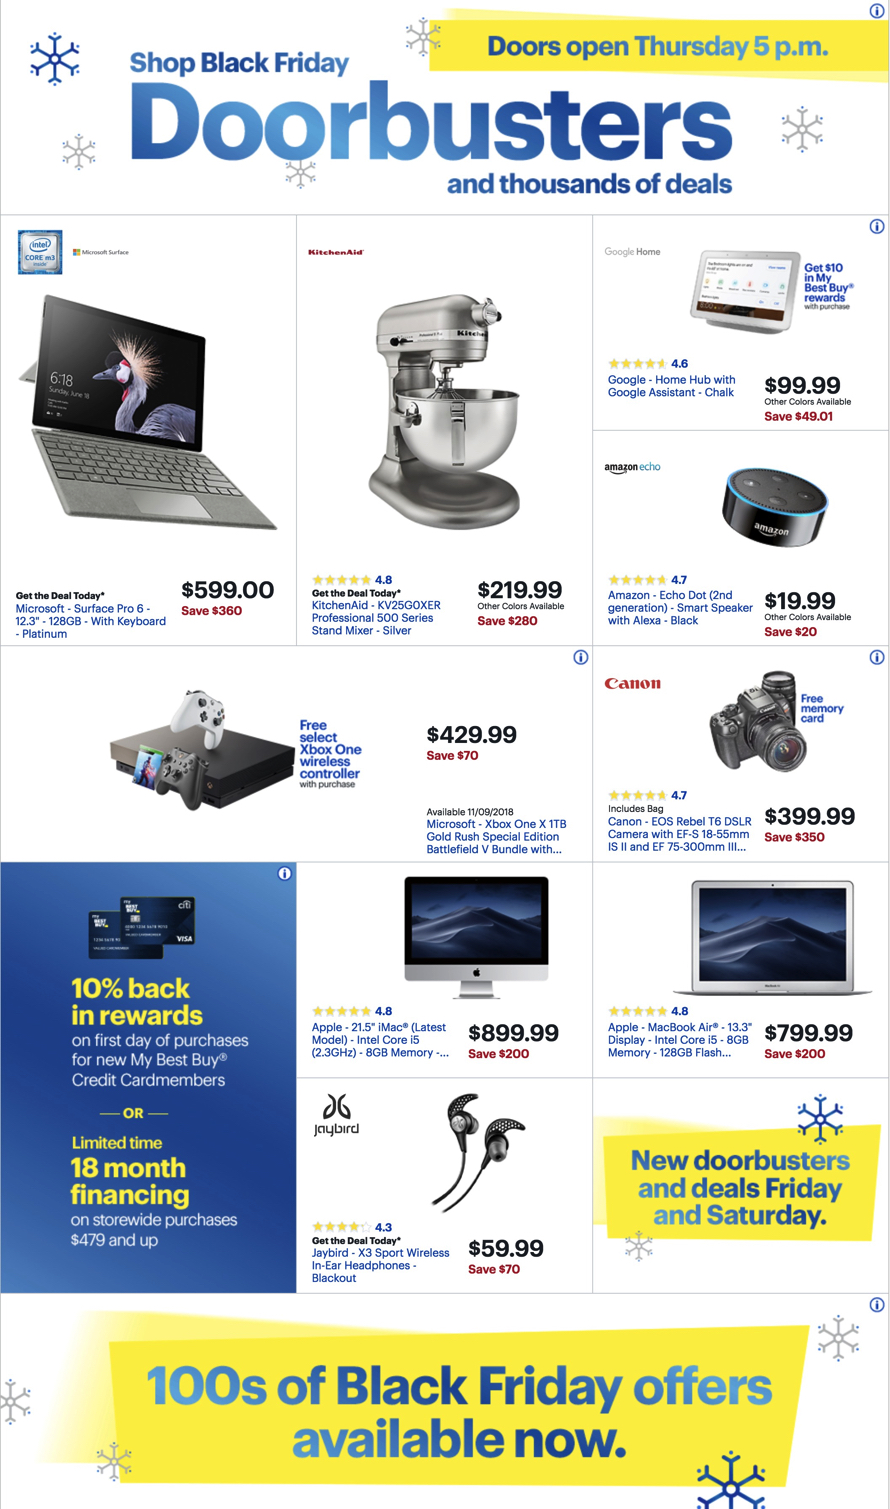 e136377e6dd47 Best Buy Black Friday 2018 Ad, Deals and Store Hours - NerdWallet